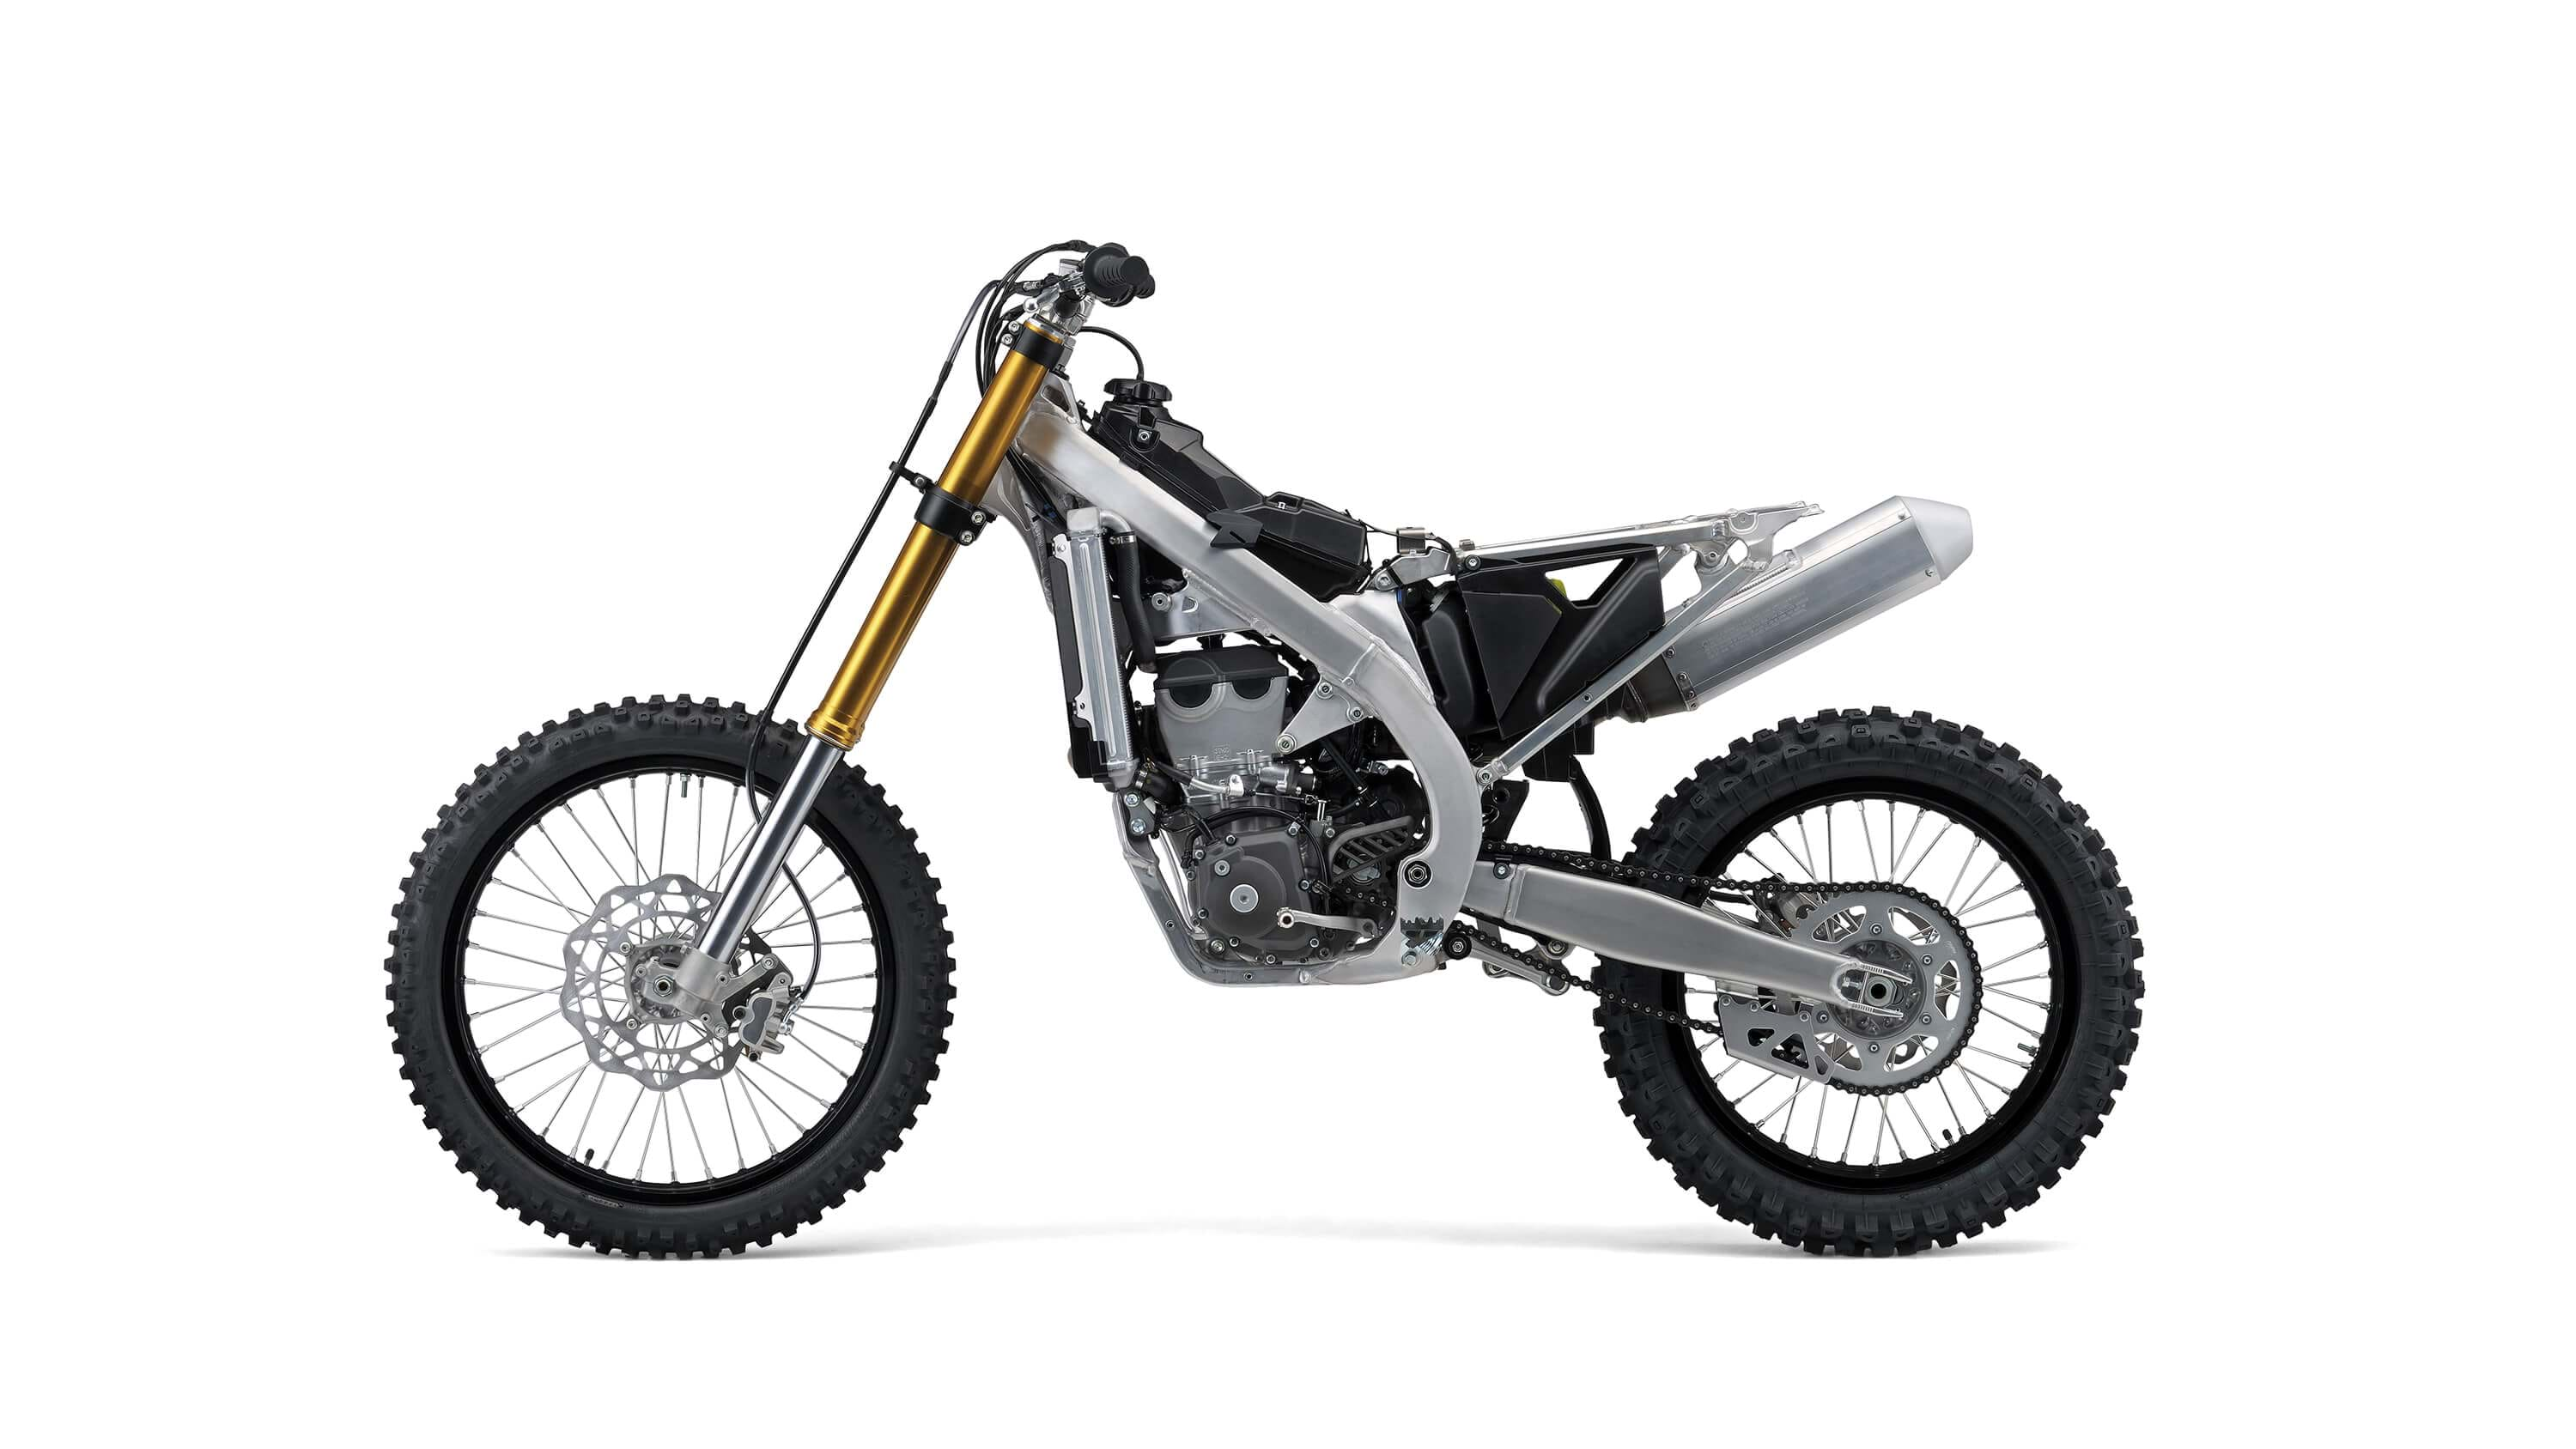 Suzuki Announces Details Of Rm Z450